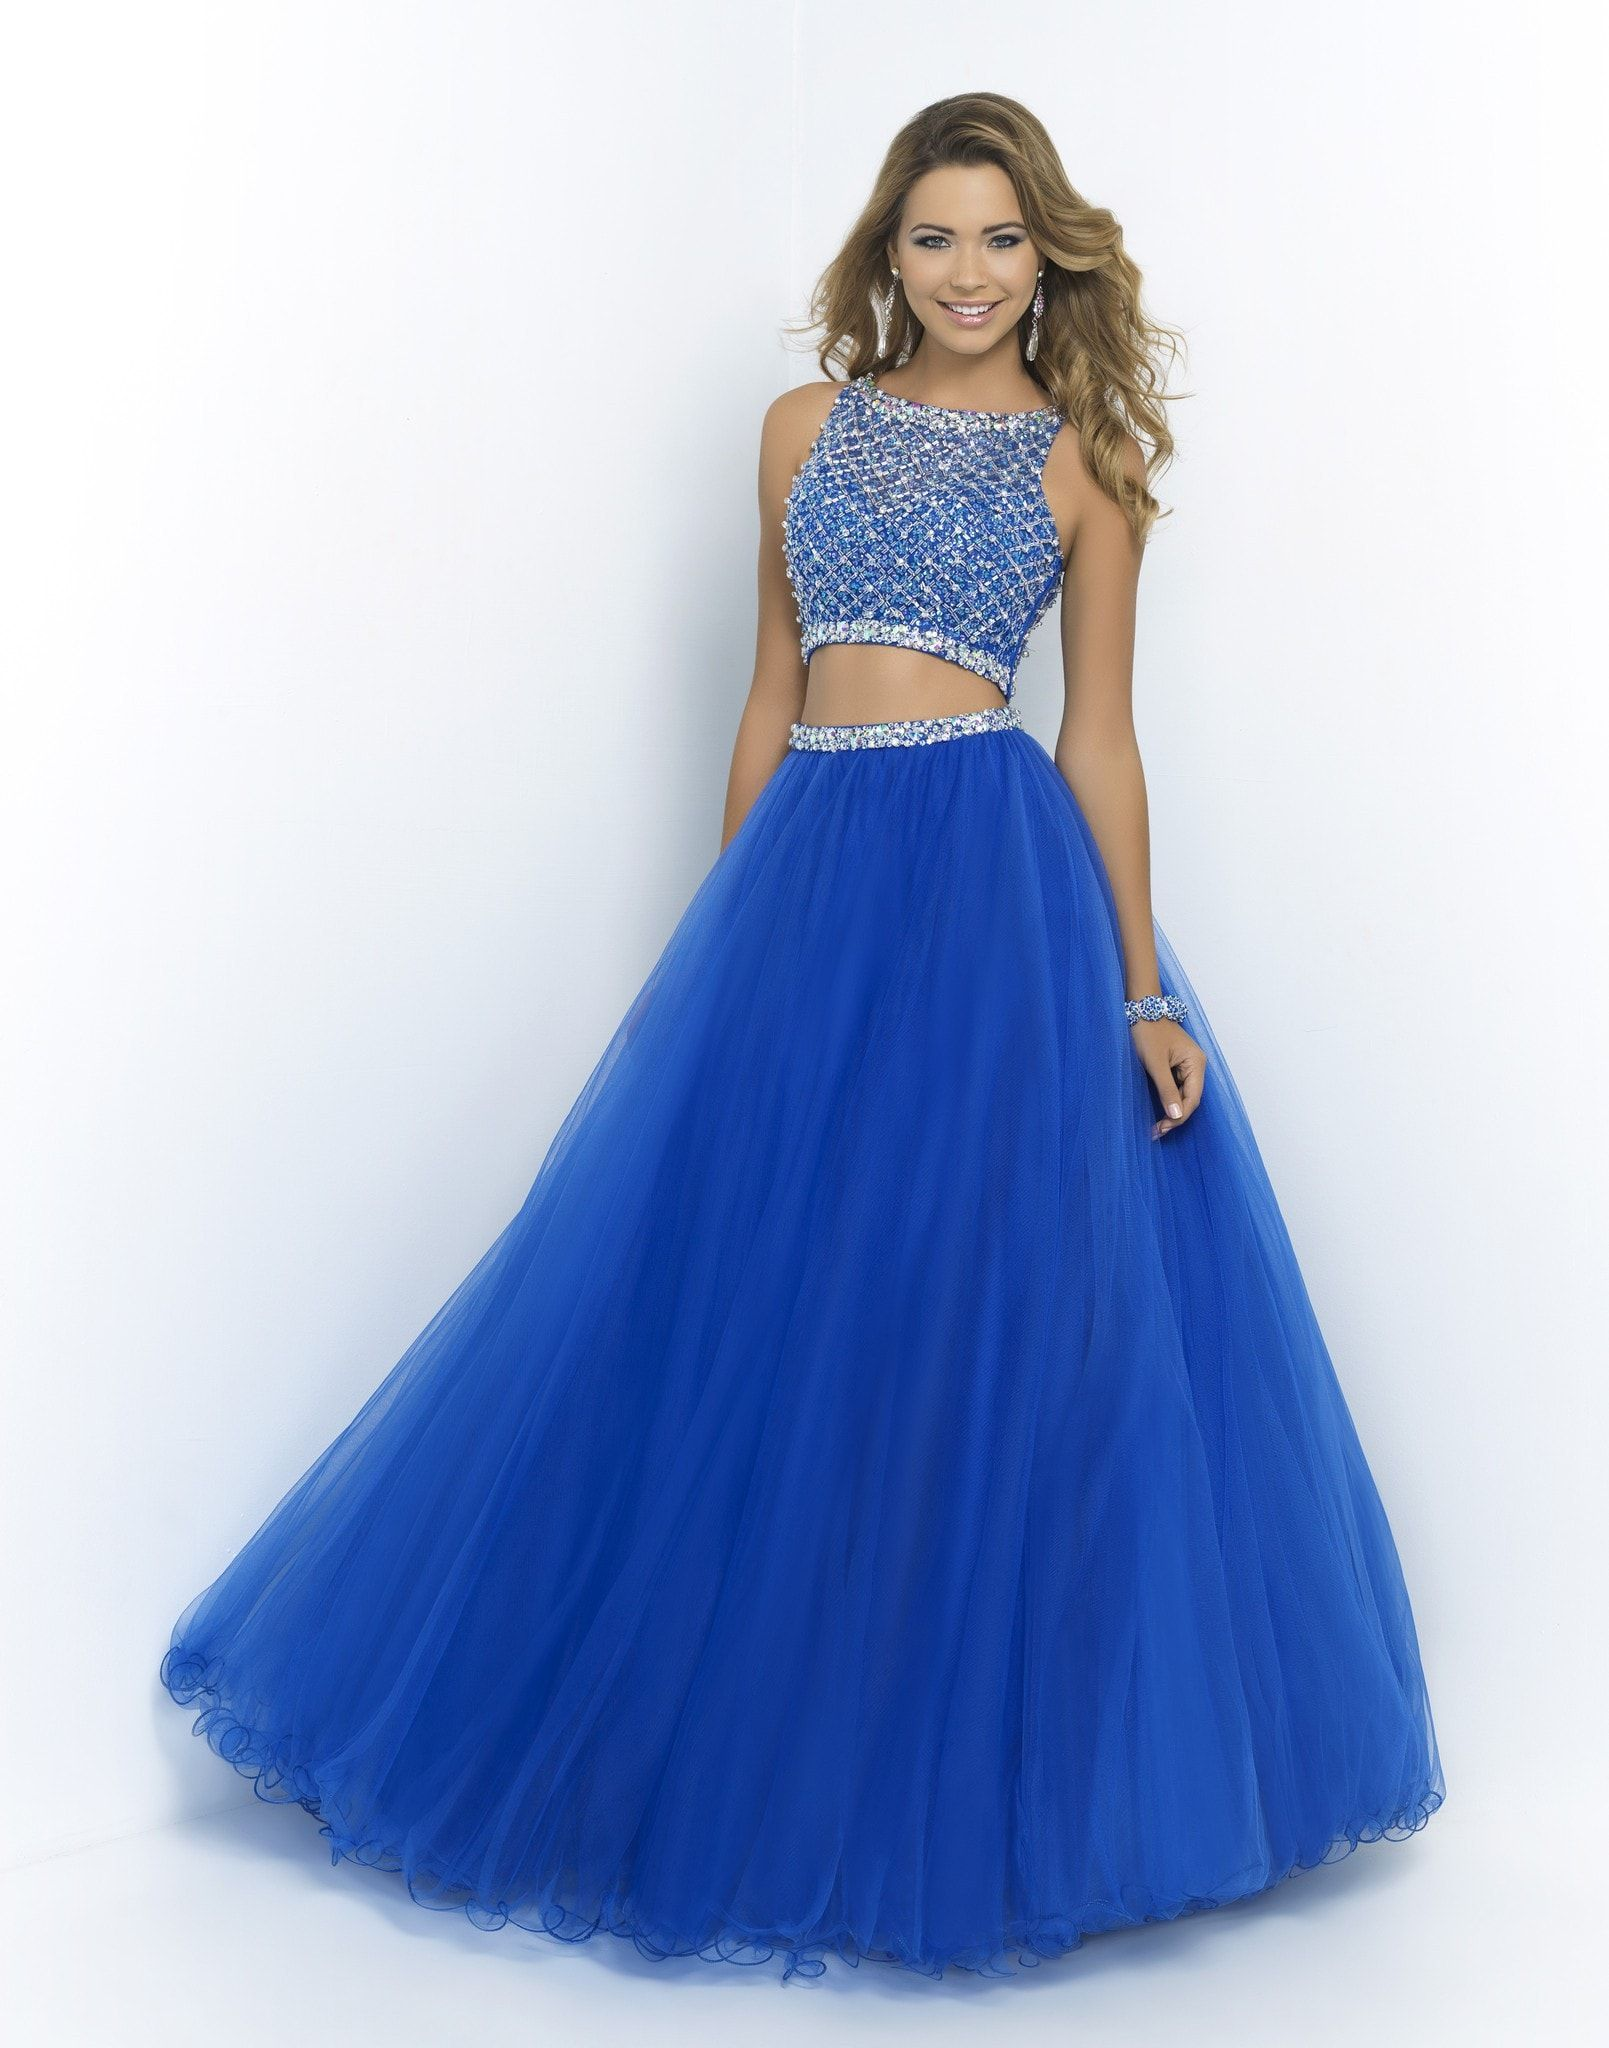 Blush pink brilliant blue ball gown bluesfeeling the blues